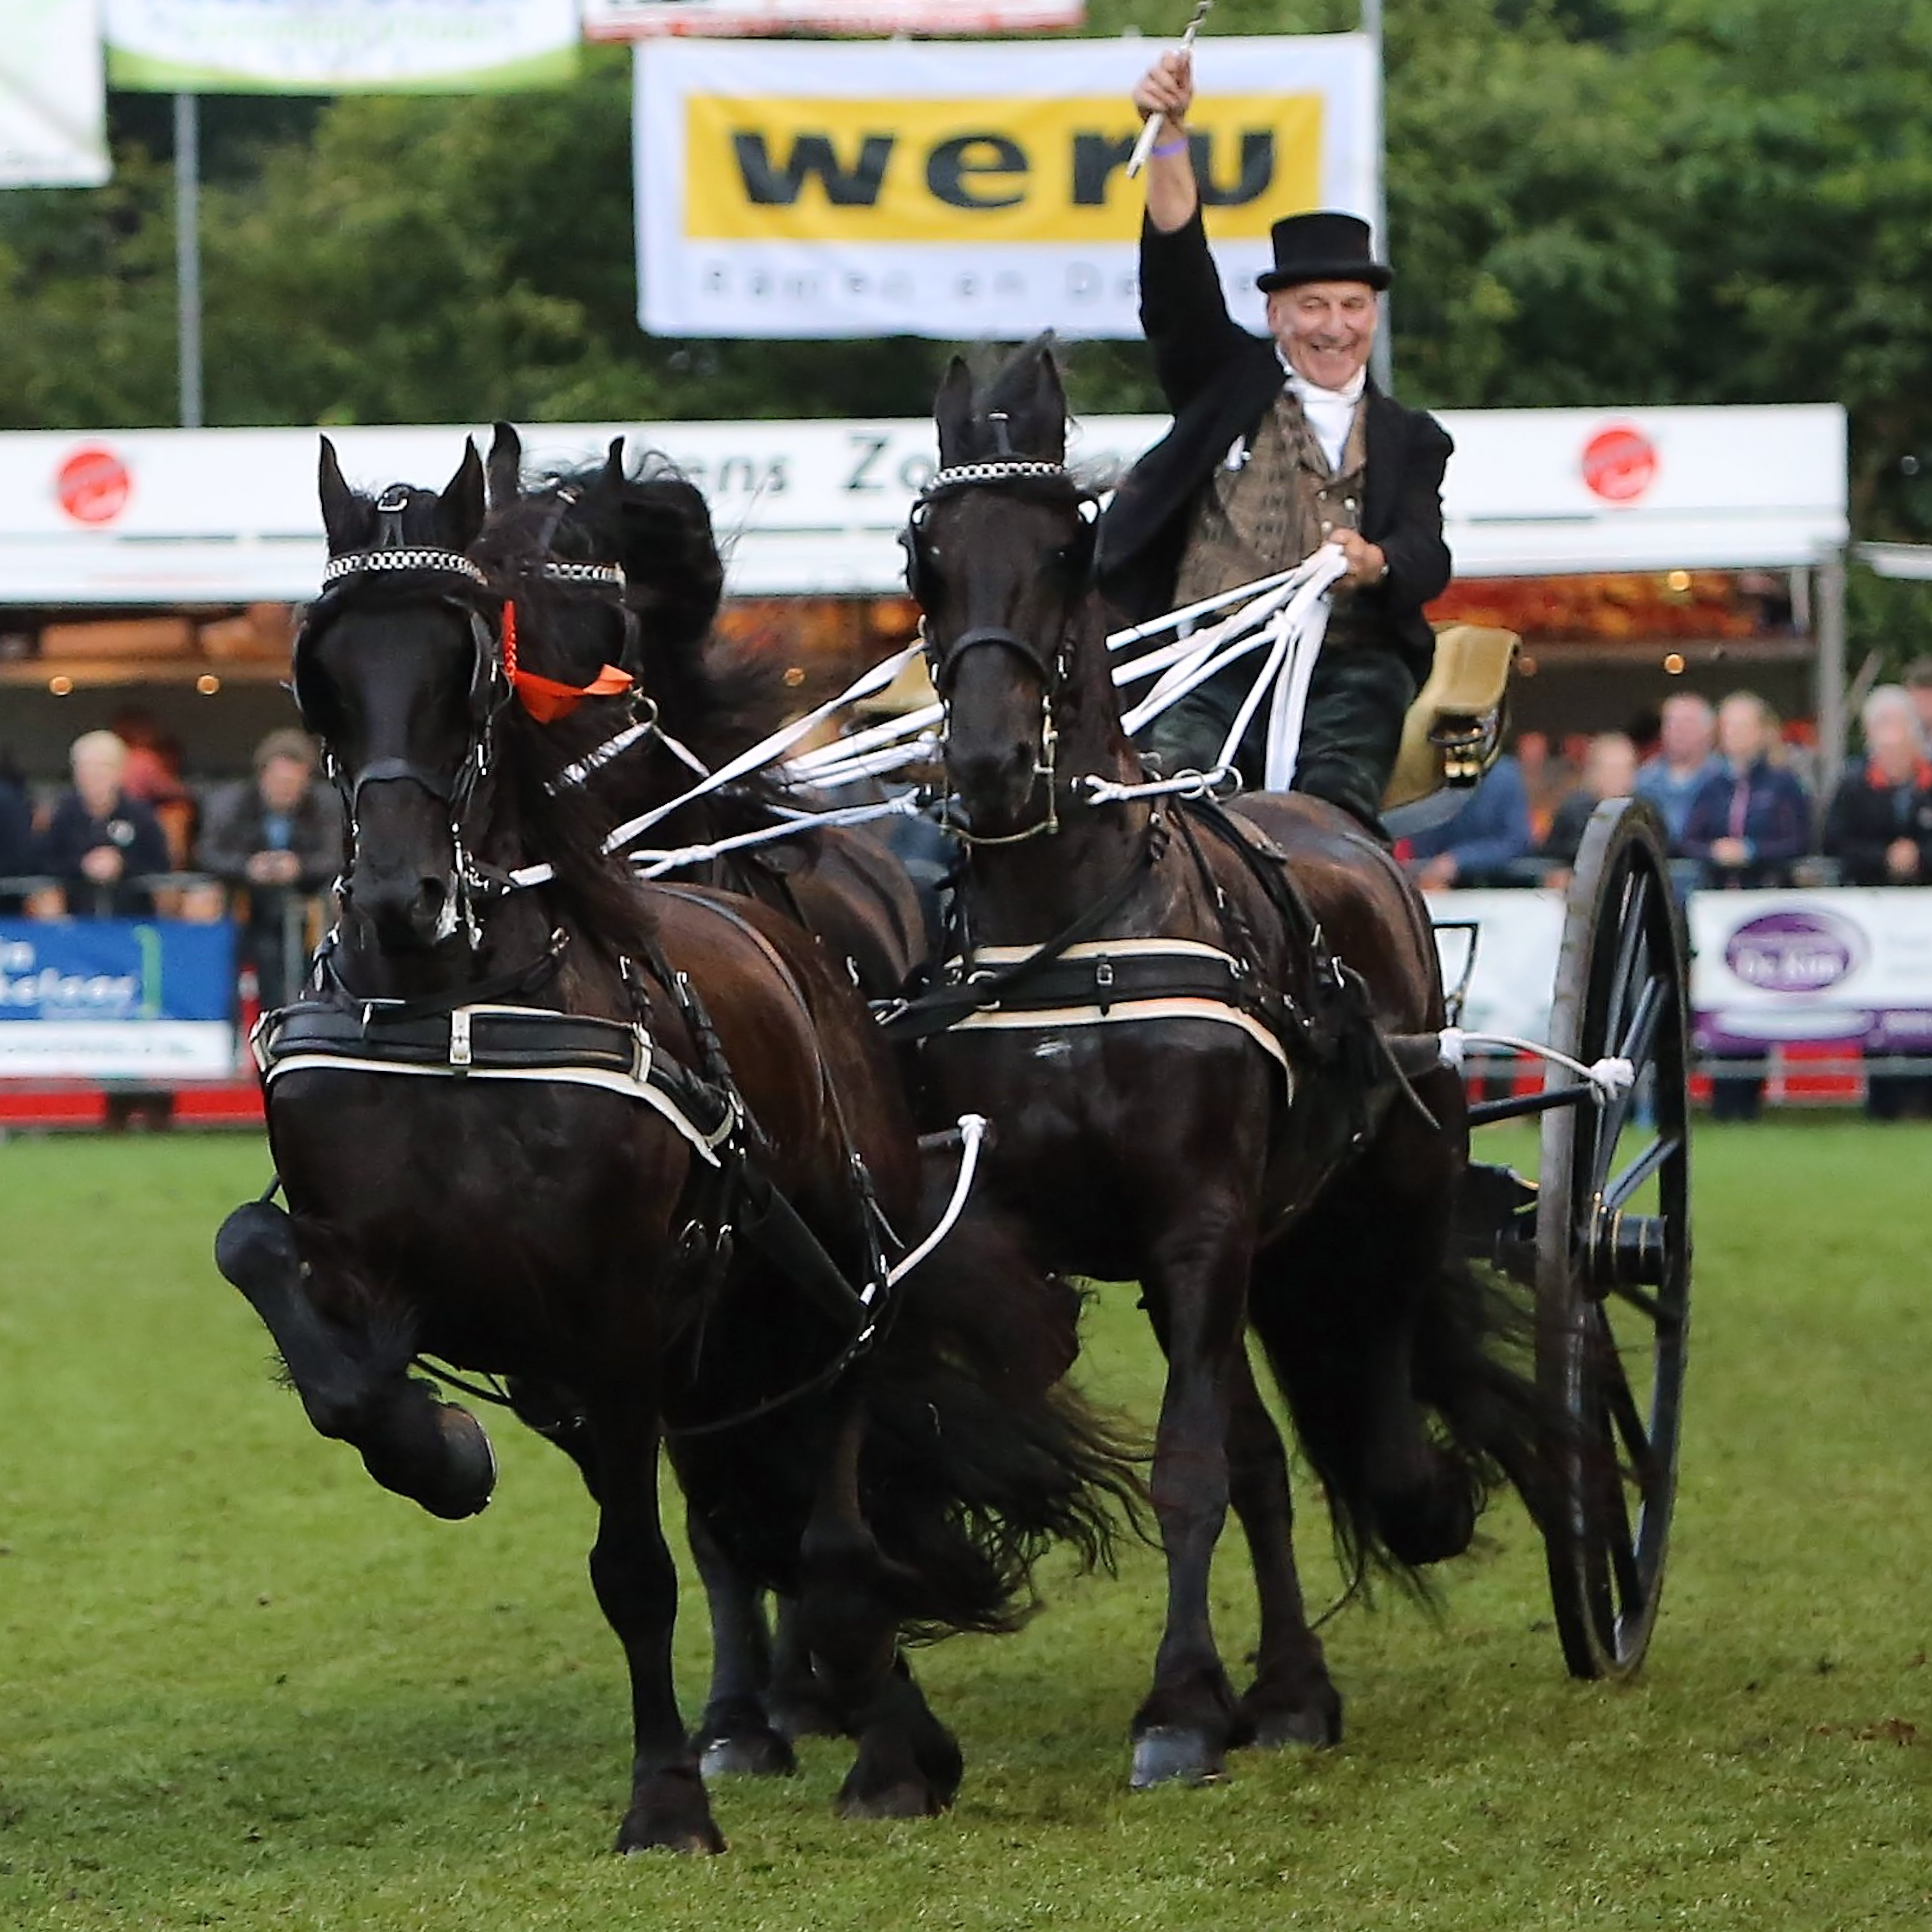 Nationaal Tuigpaardenconcours in Norg, Drenthe